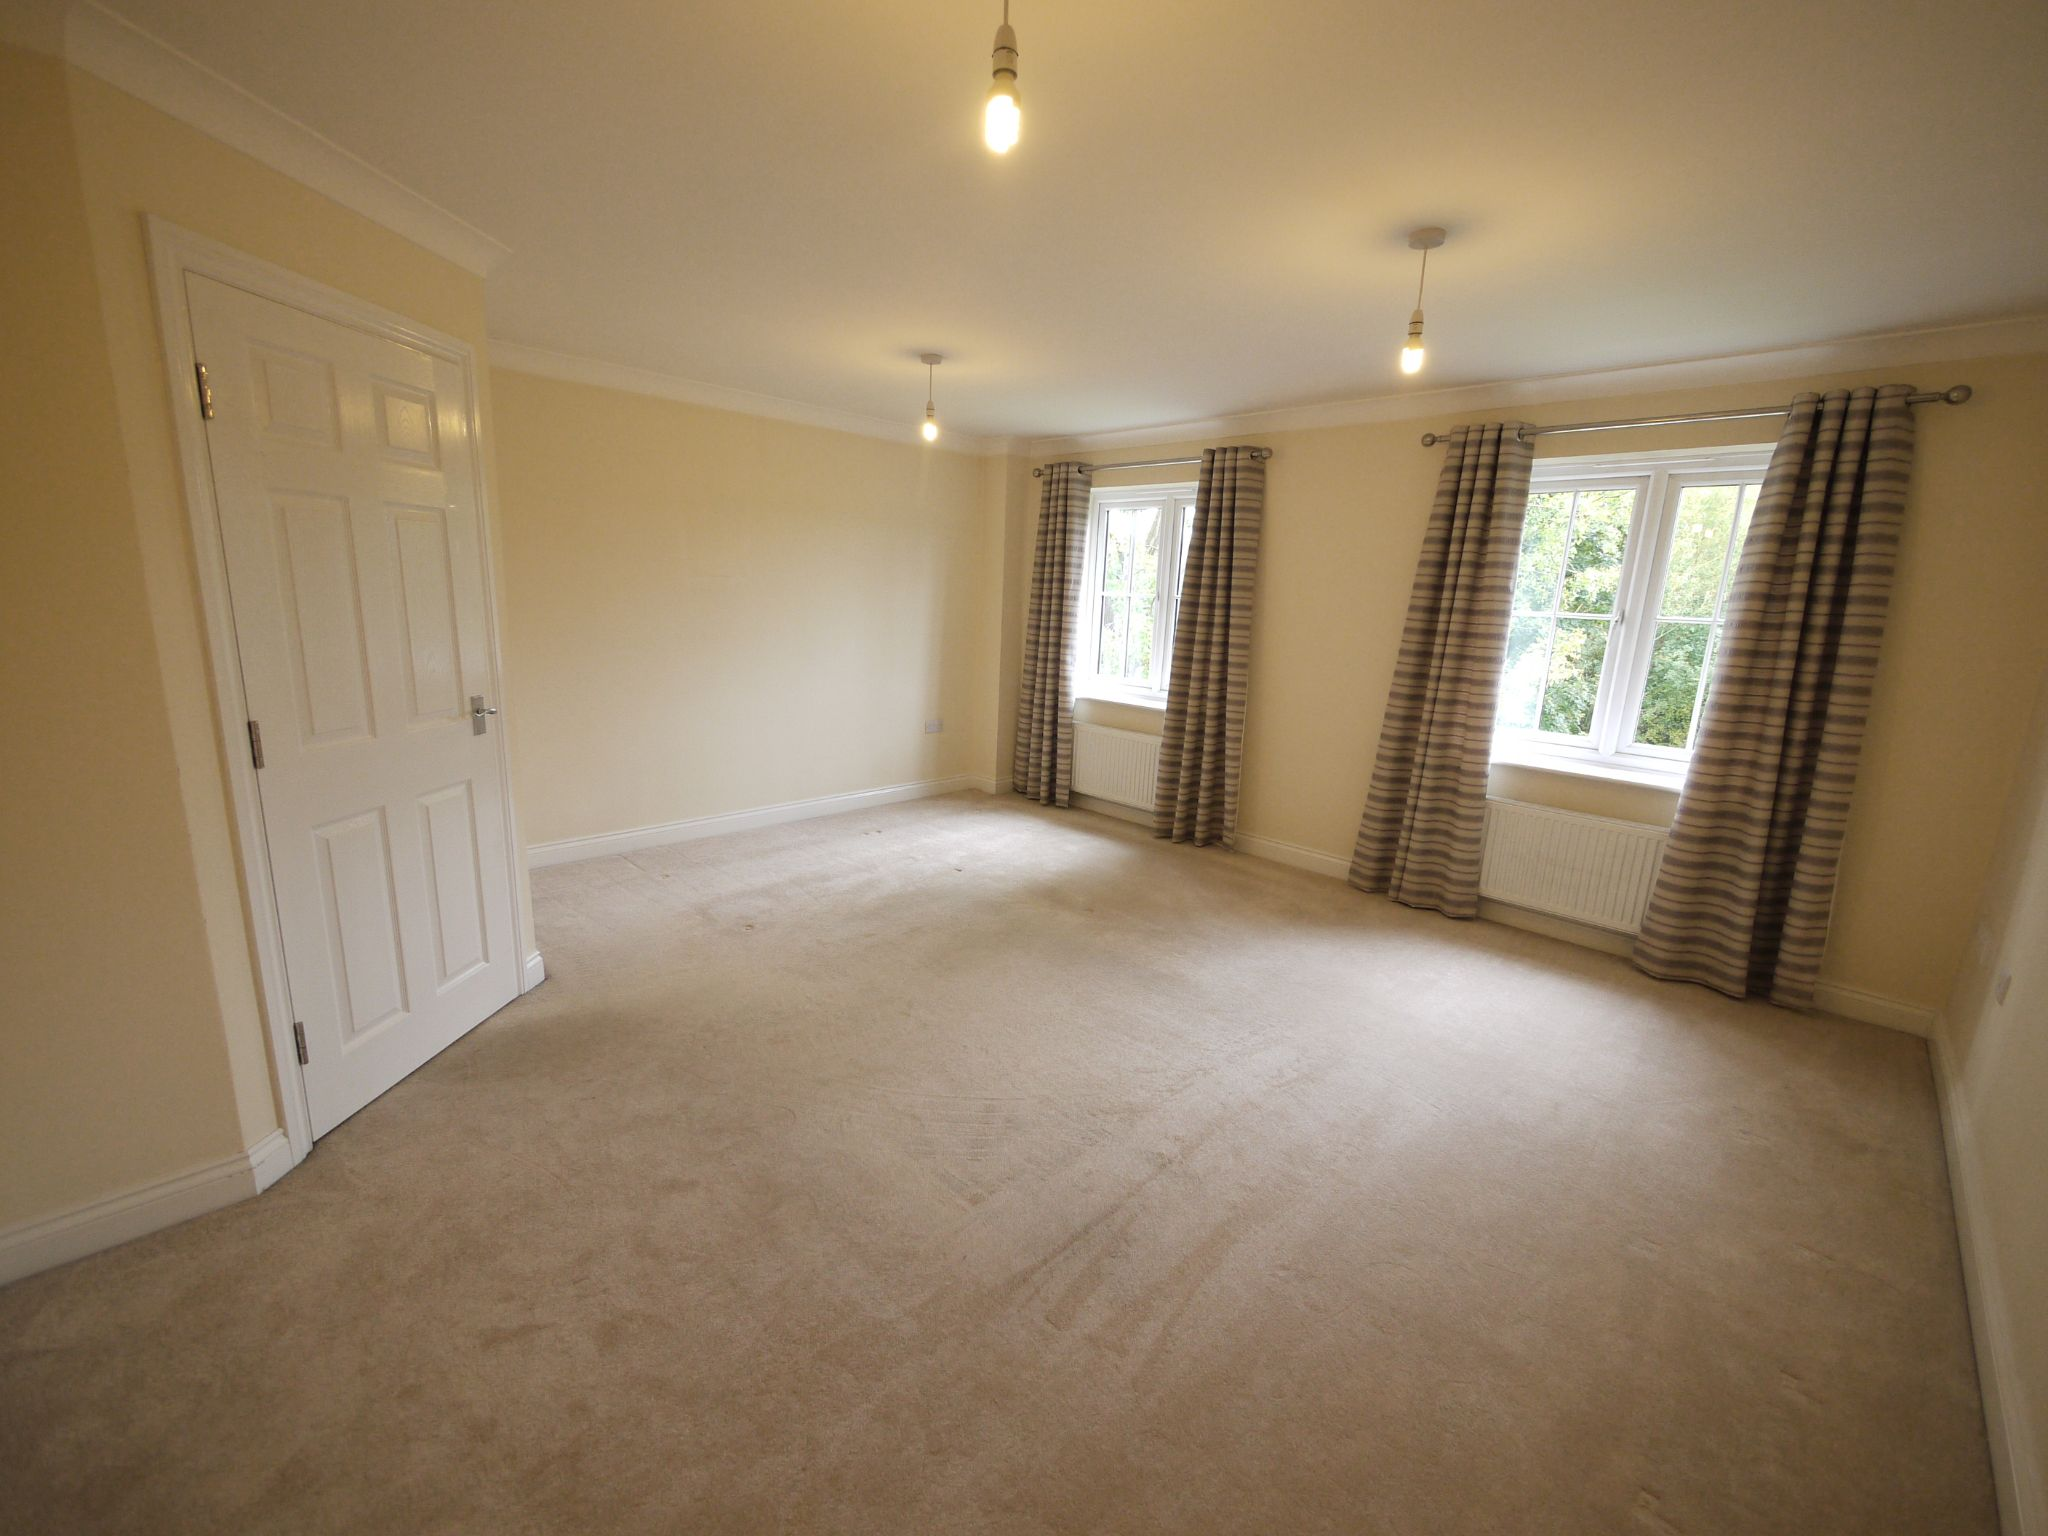 3 bedroom town house SSTC in Mirfield - Photograph 2.